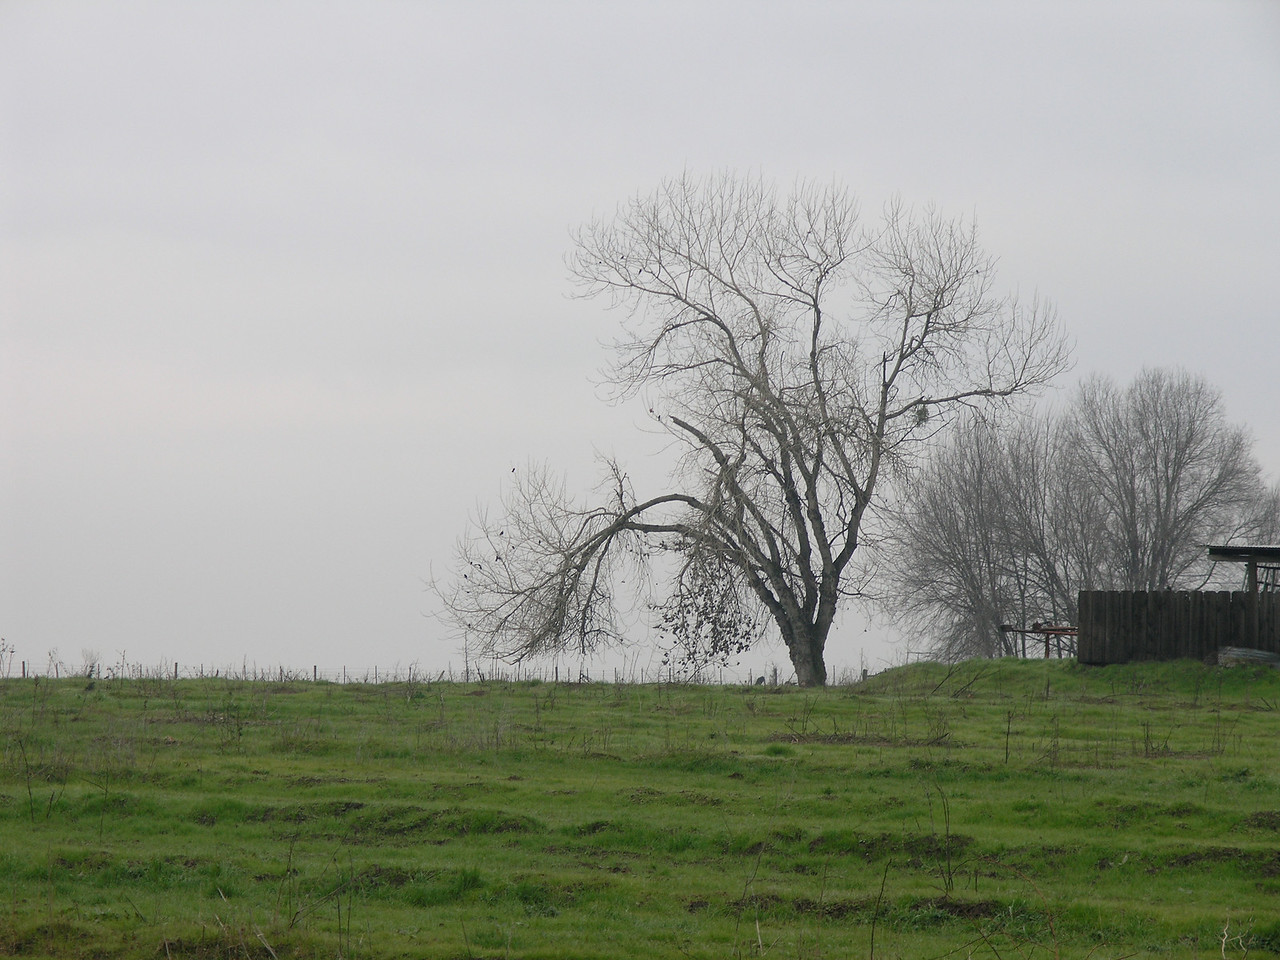 I didn't get close enough to ID the tree but it is growing on the edge of a  residence.  Deciduous trees against the fog is a typical winter scene here.